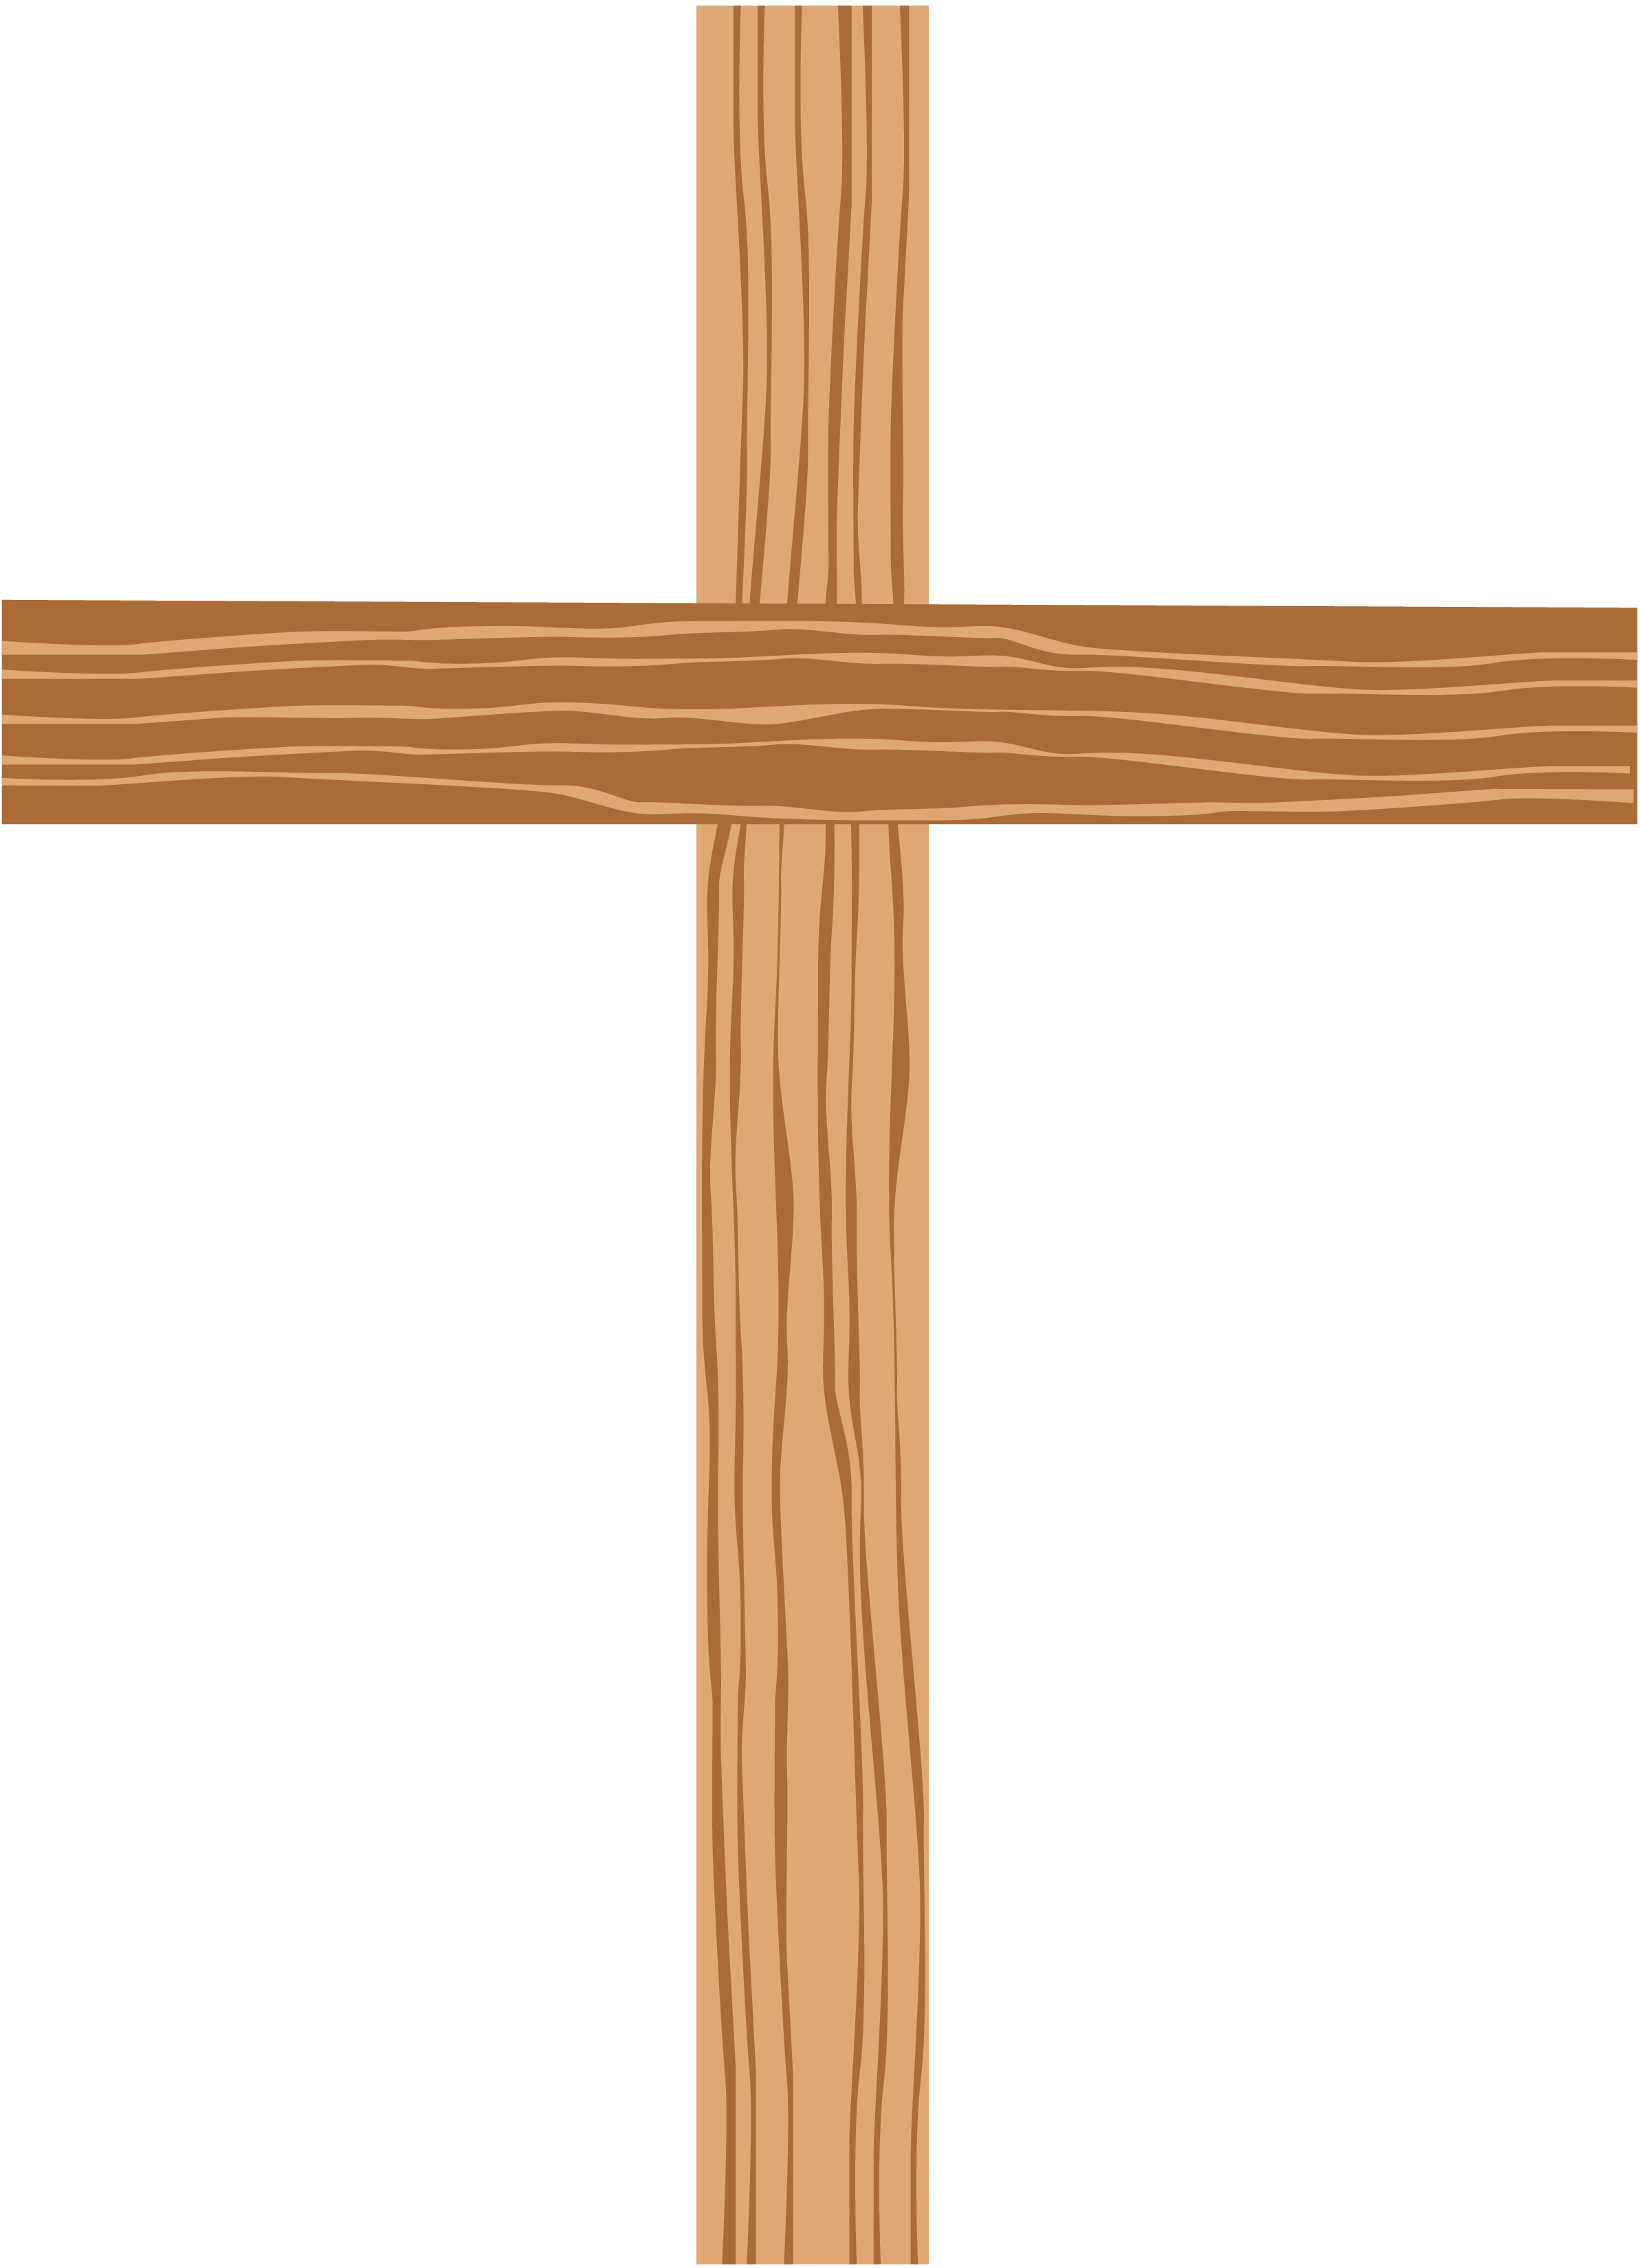 Angled cross clipart vector freeuse stock Christian cross PNG images free download vector freeuse stock